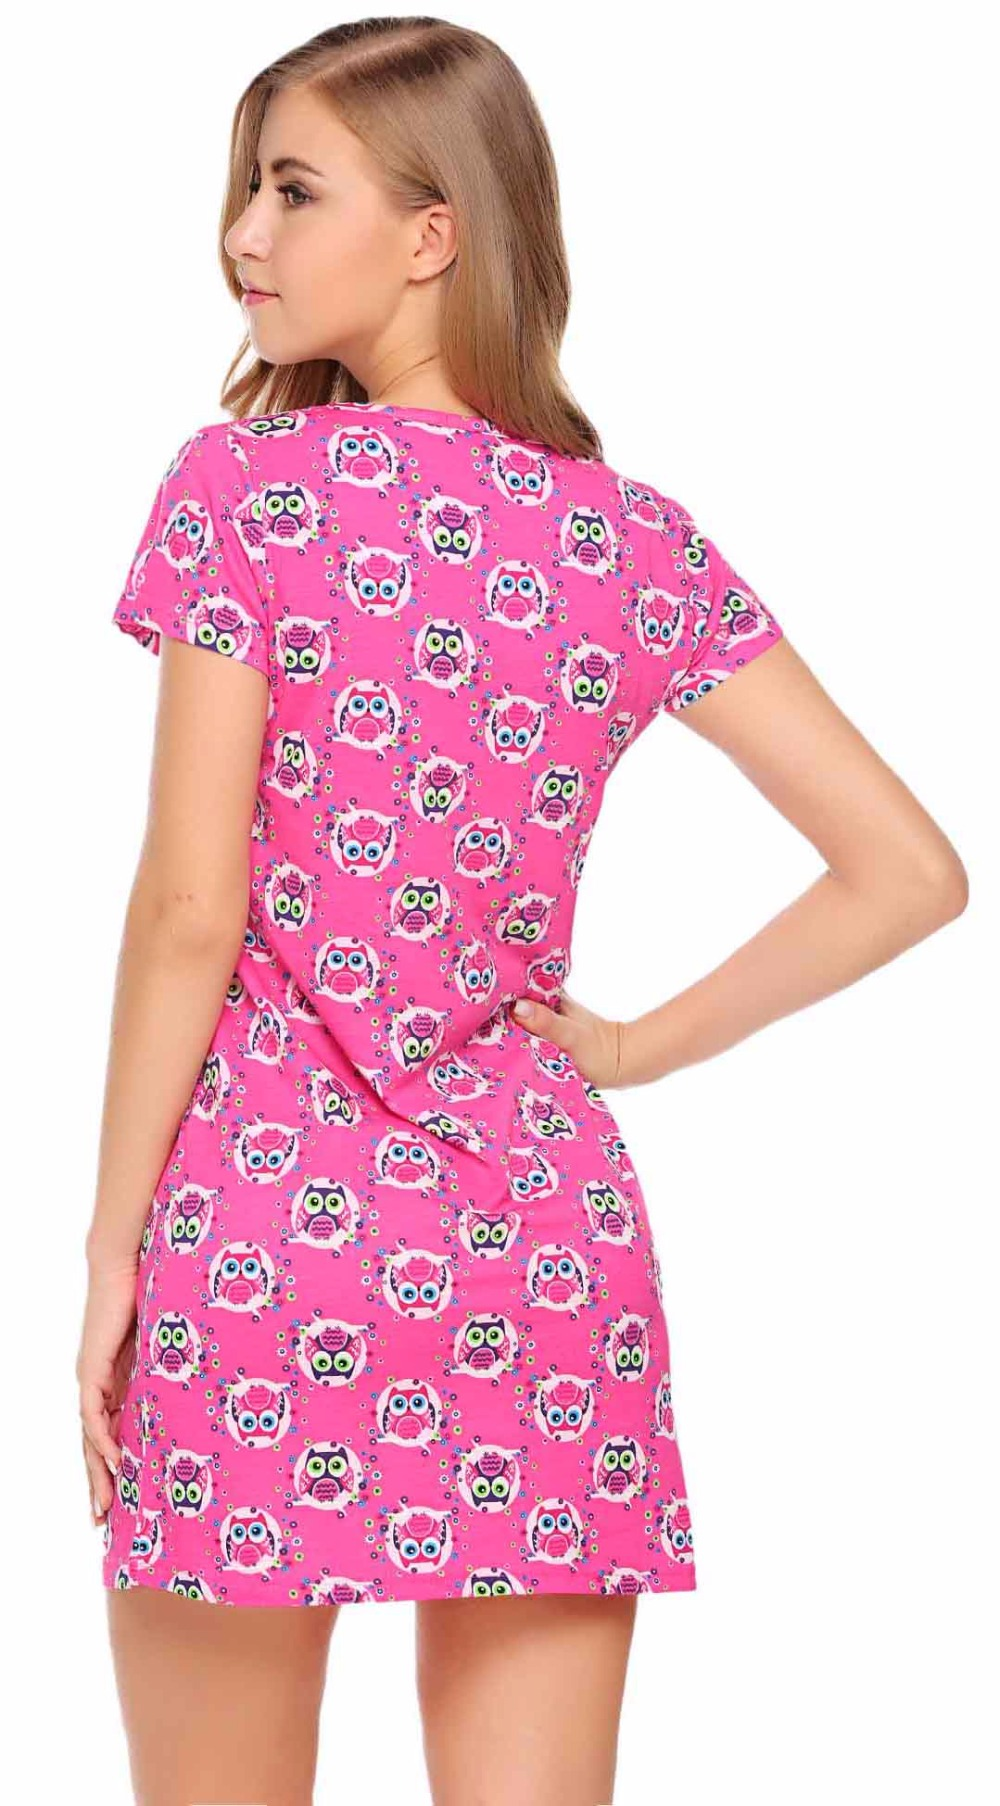 8b1e8c4adcd0 Nightgown Very Cute Cat